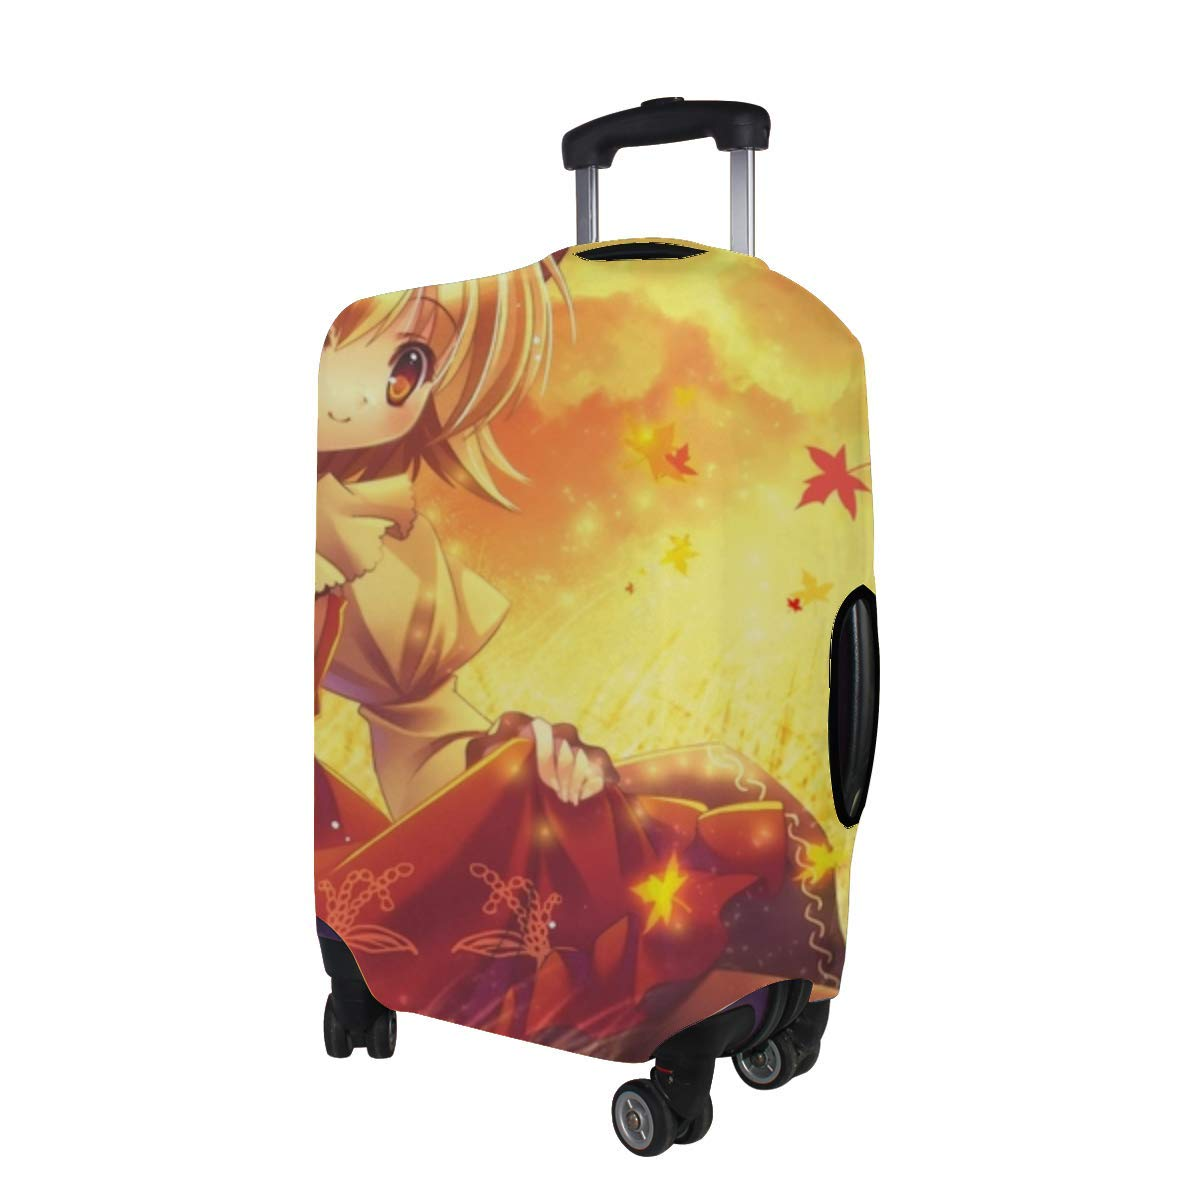 Maxm Anime Girl Smile Sunset Meadow Dress Pattern Print Travel Luggage Protector Baggage Suitcase Cover Fits 18-21 Inch Luggage